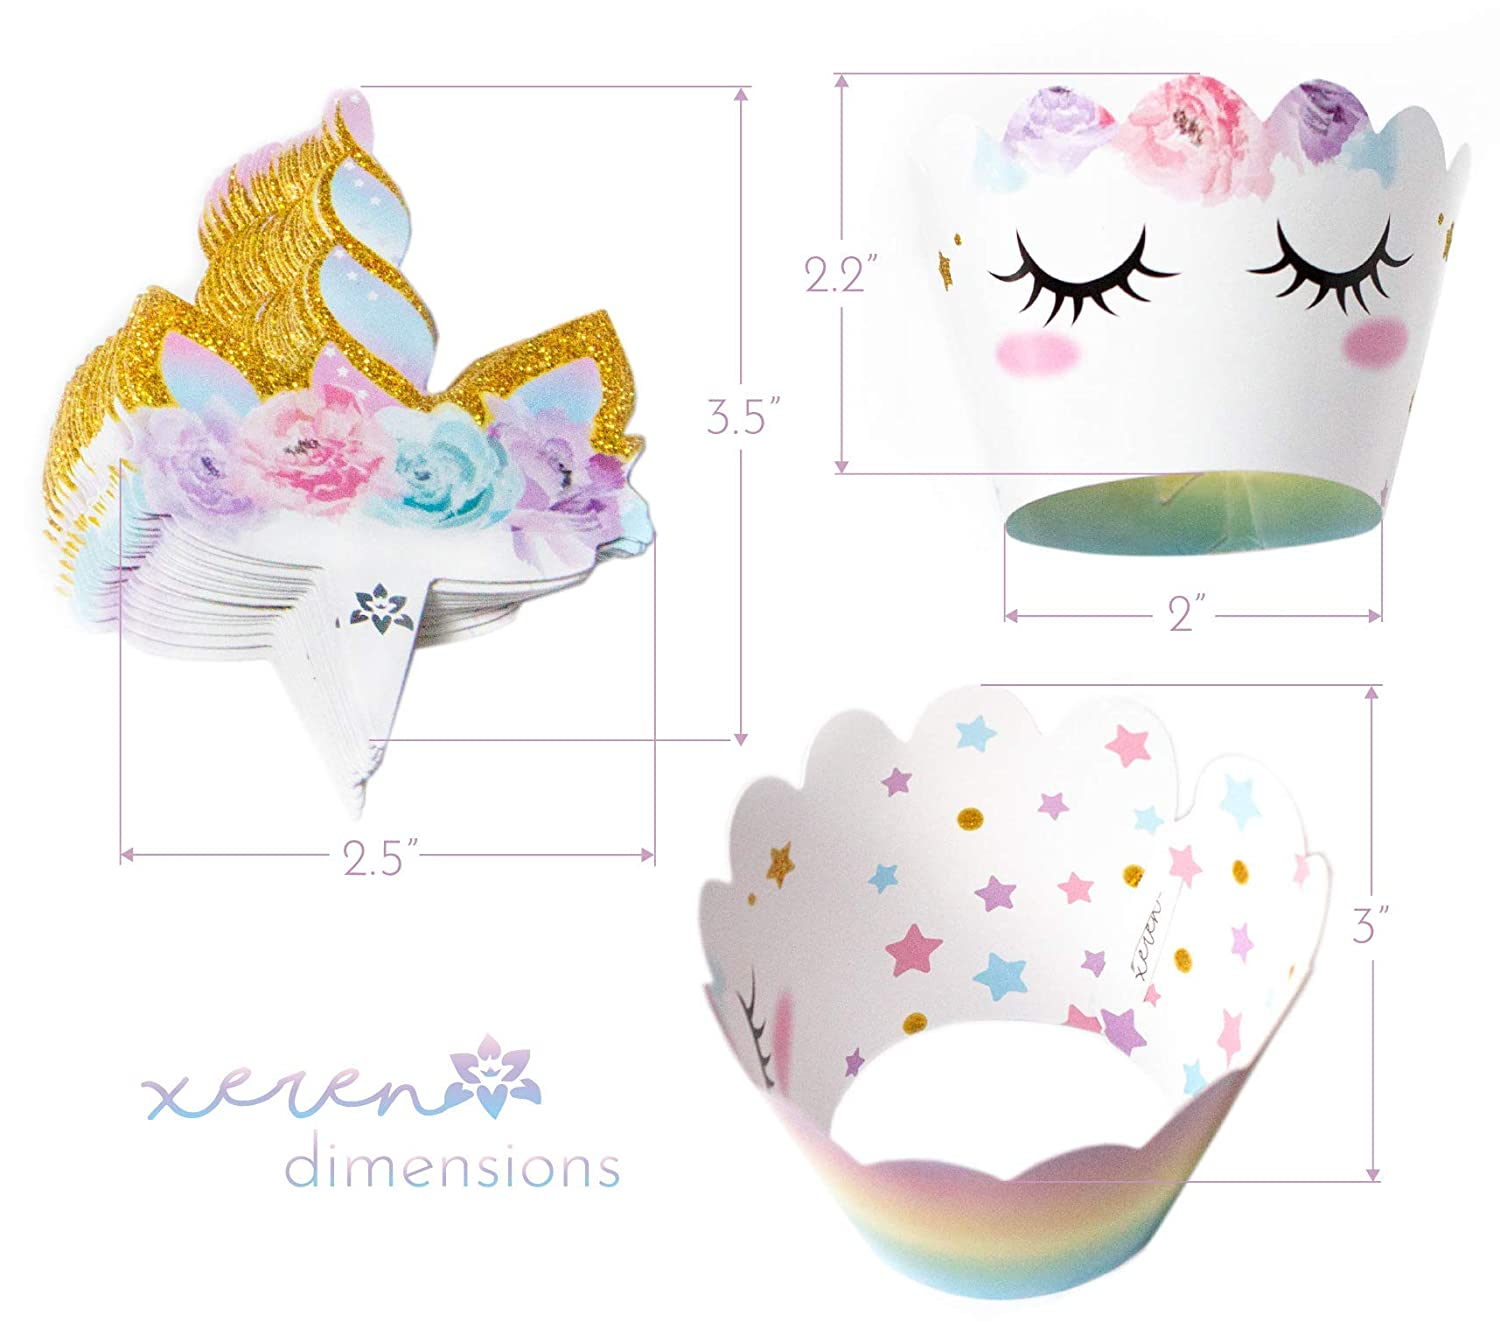 Unicorn Cupcake Decorations By Xeren Designs 24 sets Double Sided Toppers and Wrappers Cute Girls Birthday Party Supplies Rainbow and Gold Glitter Decorations